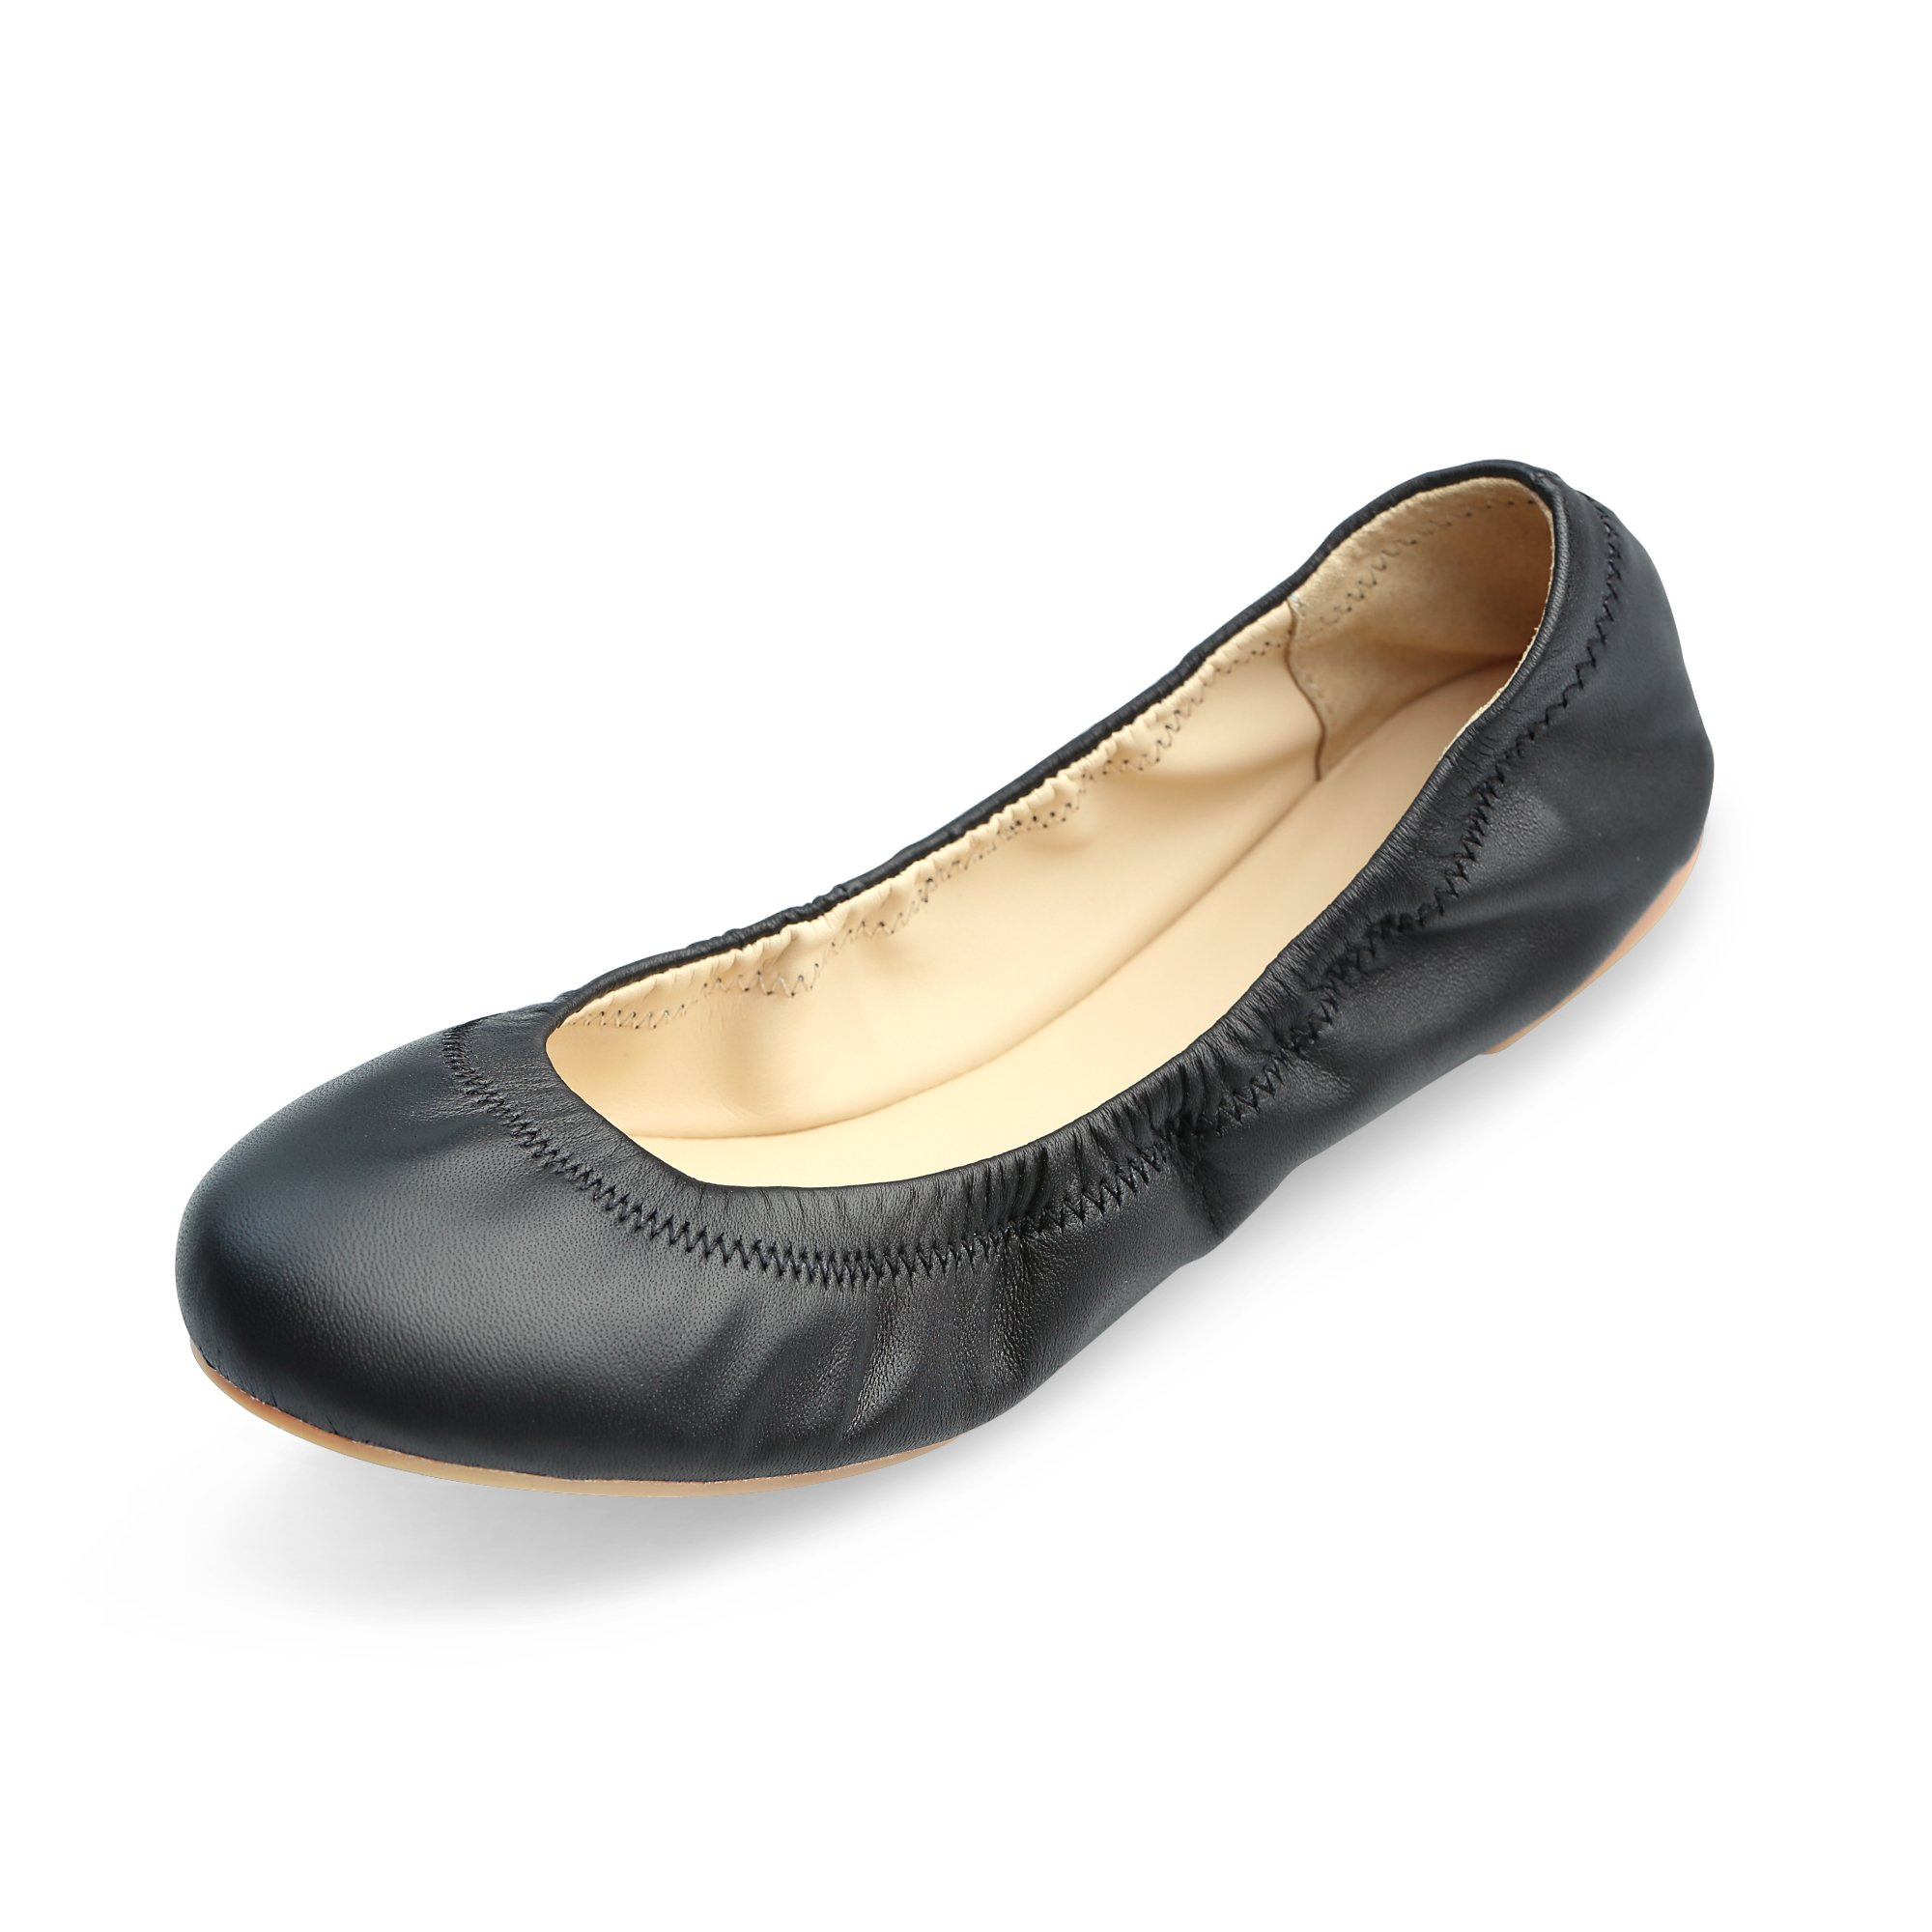 Xielong Women's Chaste Ballet Flat Lambskin Loafers Casual Ladies Shoes Leather Black 8.5